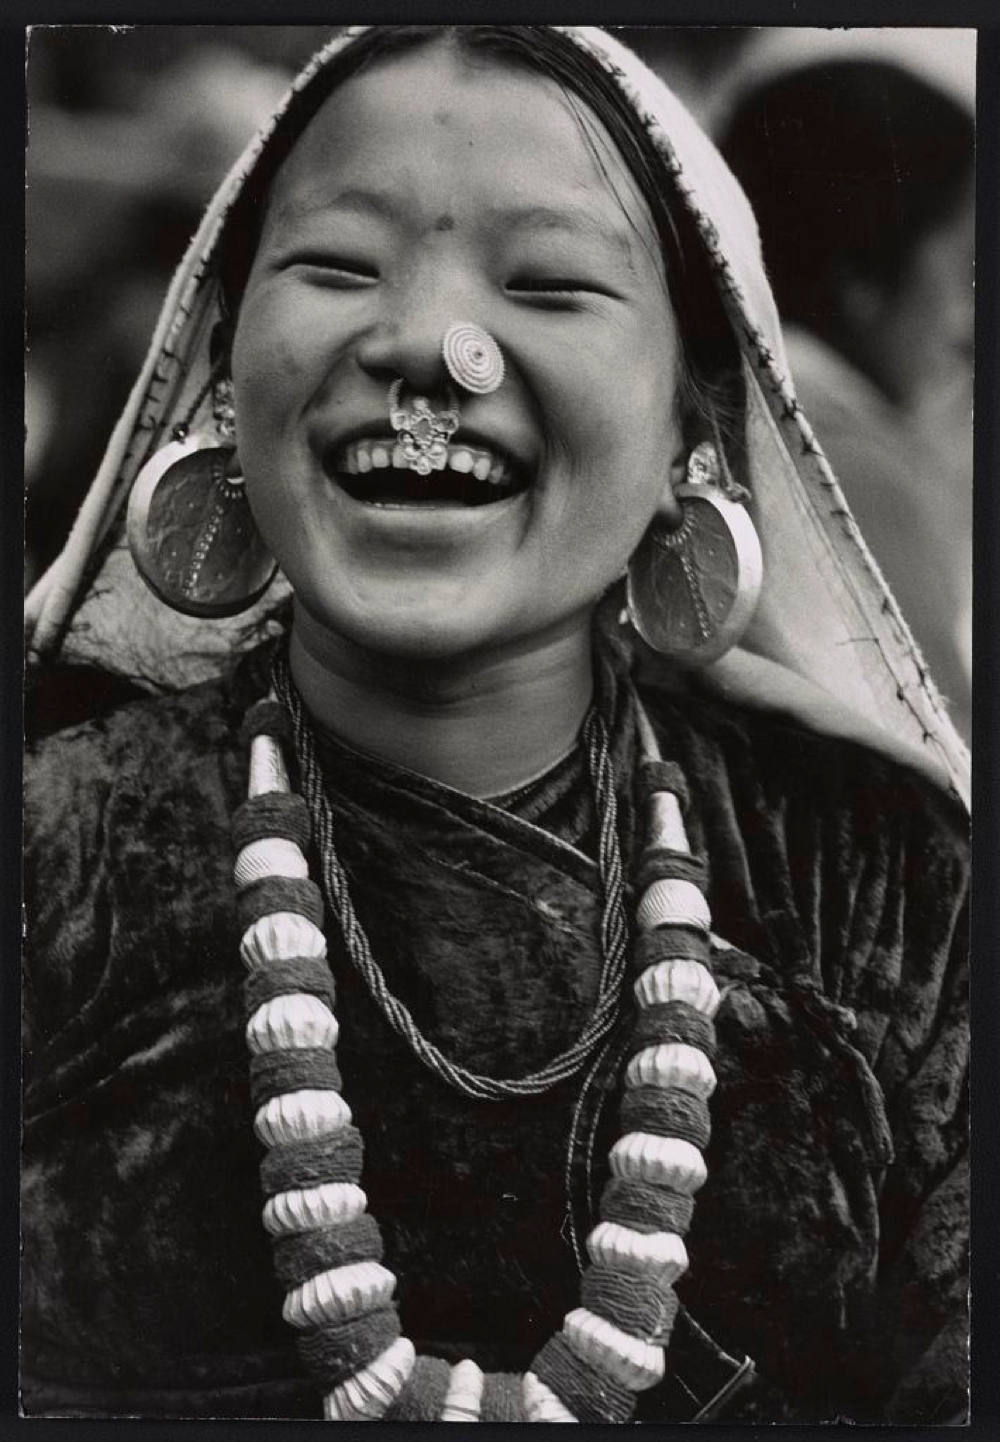 Photograph shows a Nepalese girl, head-and-shoulders portrait, facing front, smiling, wearing necklace, earrings and nose ornaments, in Sikkim.